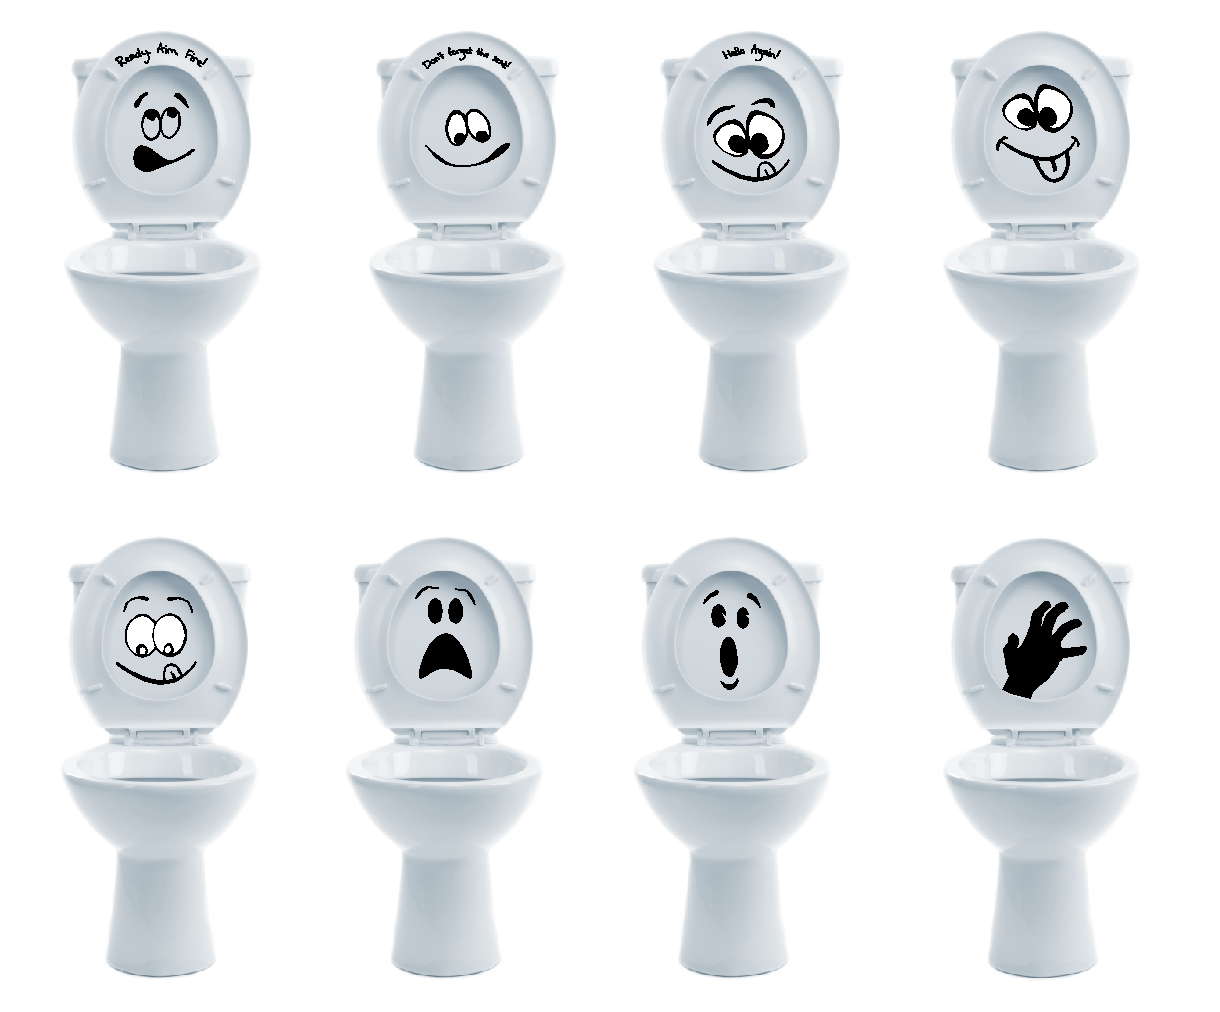 sample-toilet-collection-1-.jpg